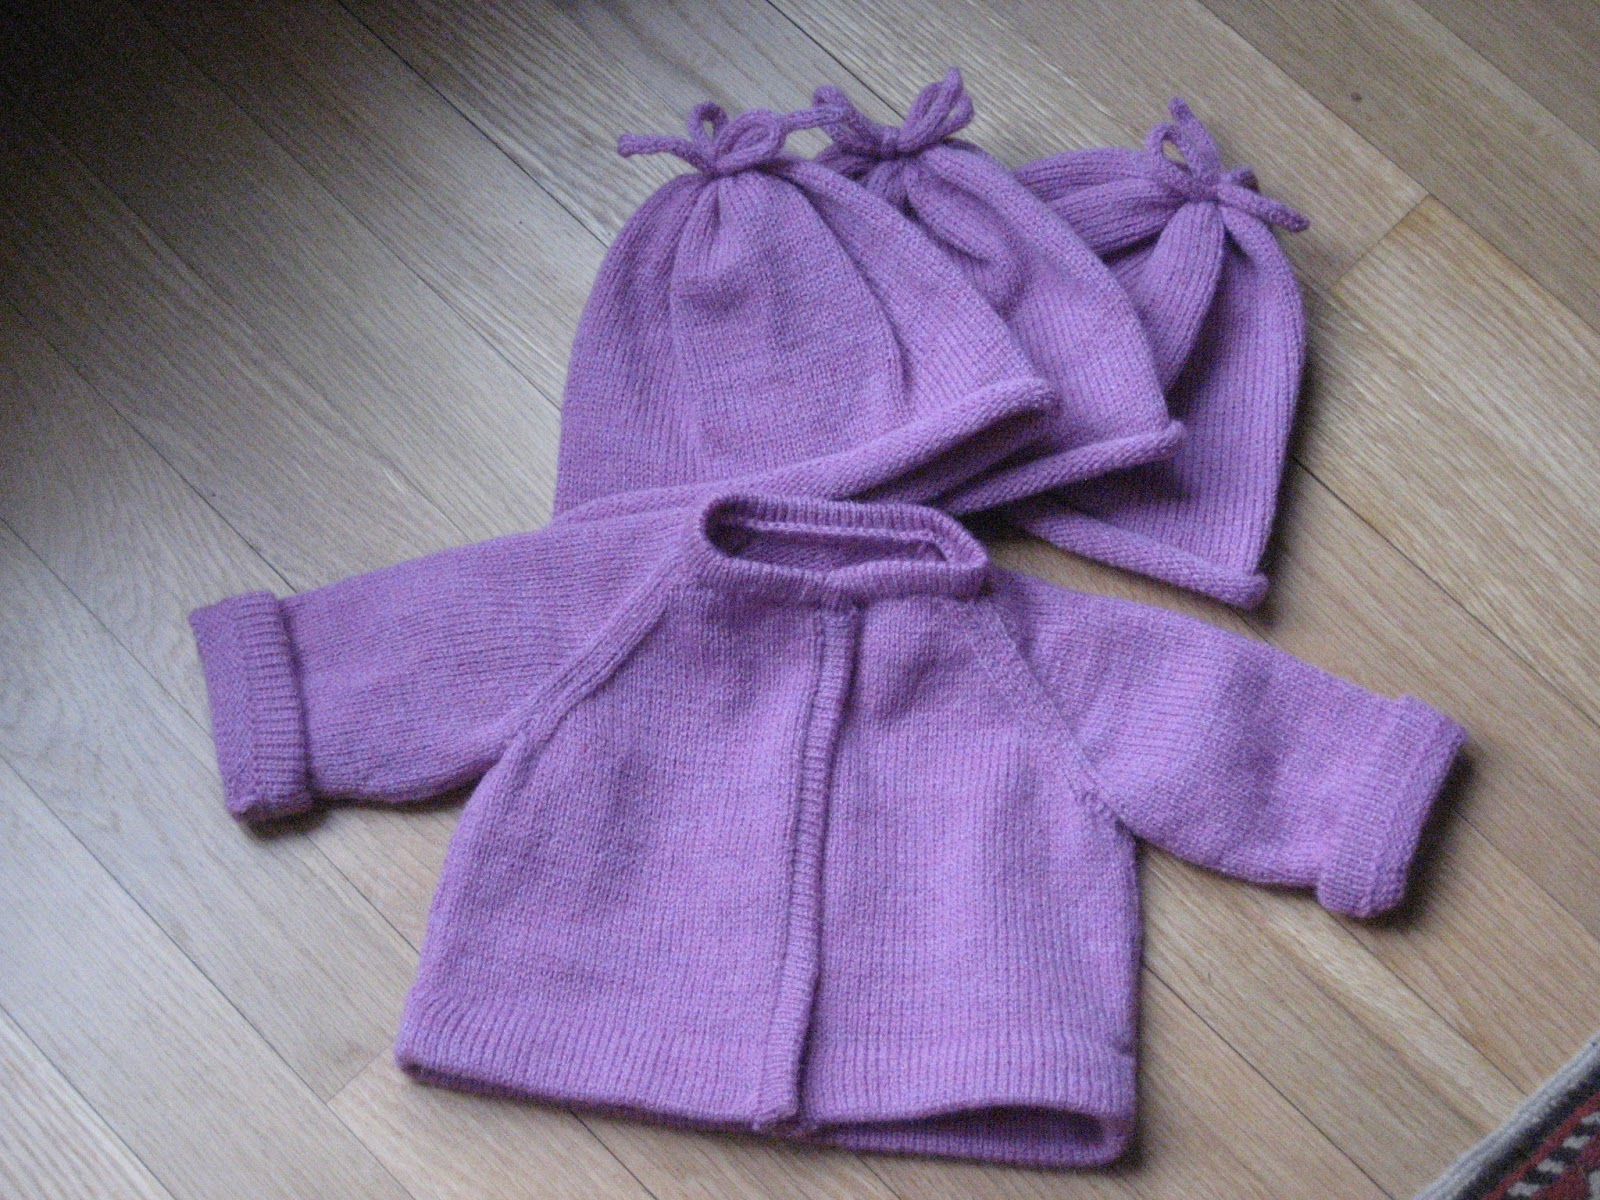 Knitting For Babies Charity : Marzipanknits machine knit charity patterns